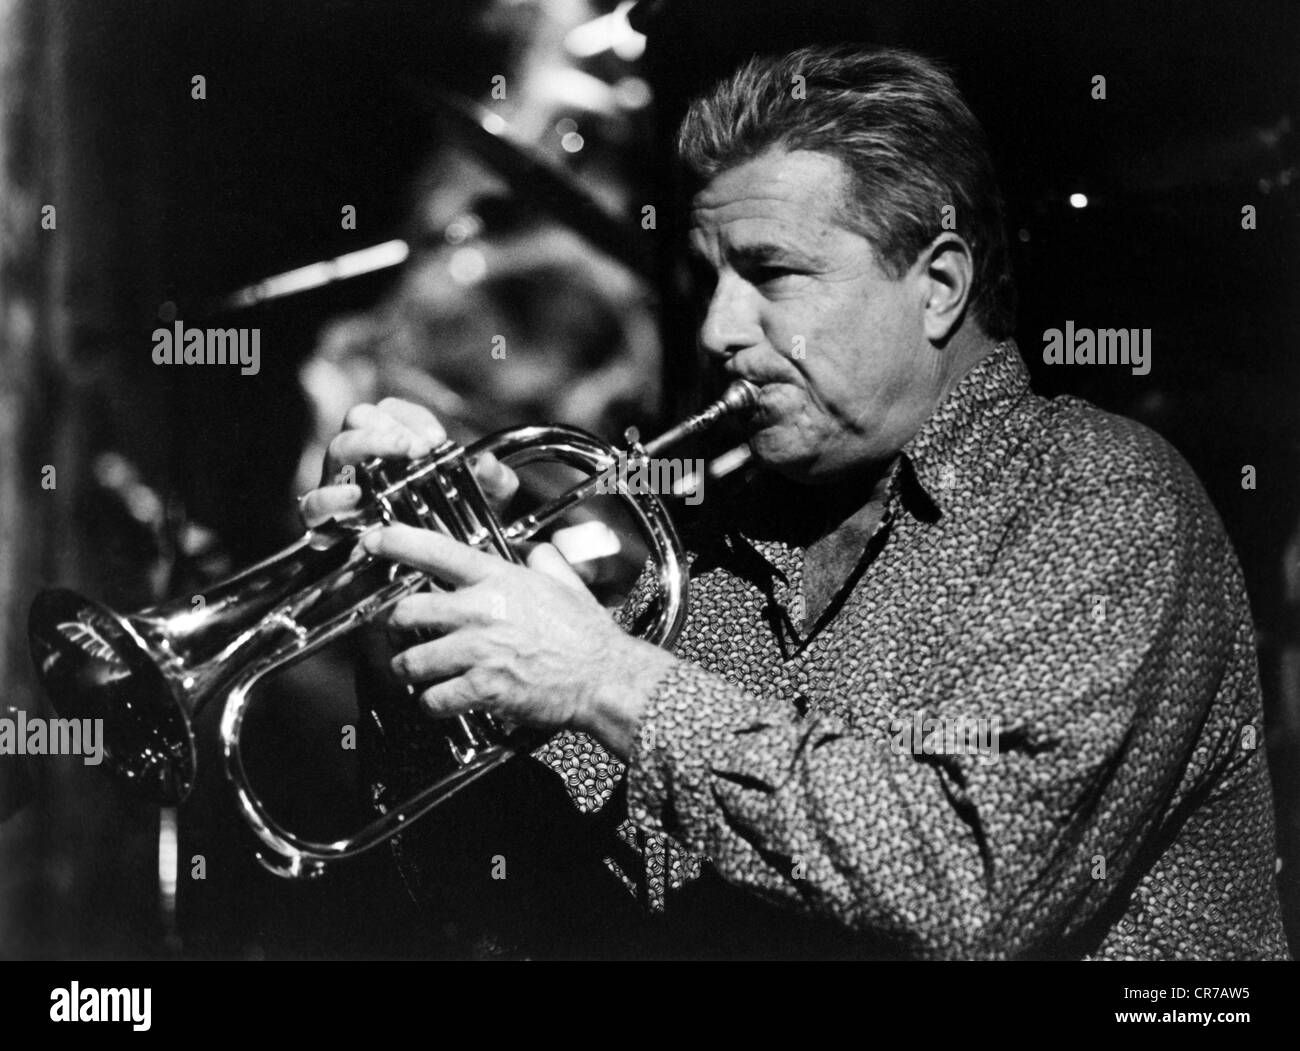 Elliott, Jeff, musician (jazz trumpeter), half length, during concert gig, Montreux, 1998, Additional-Rights-Clearances - Stock Image